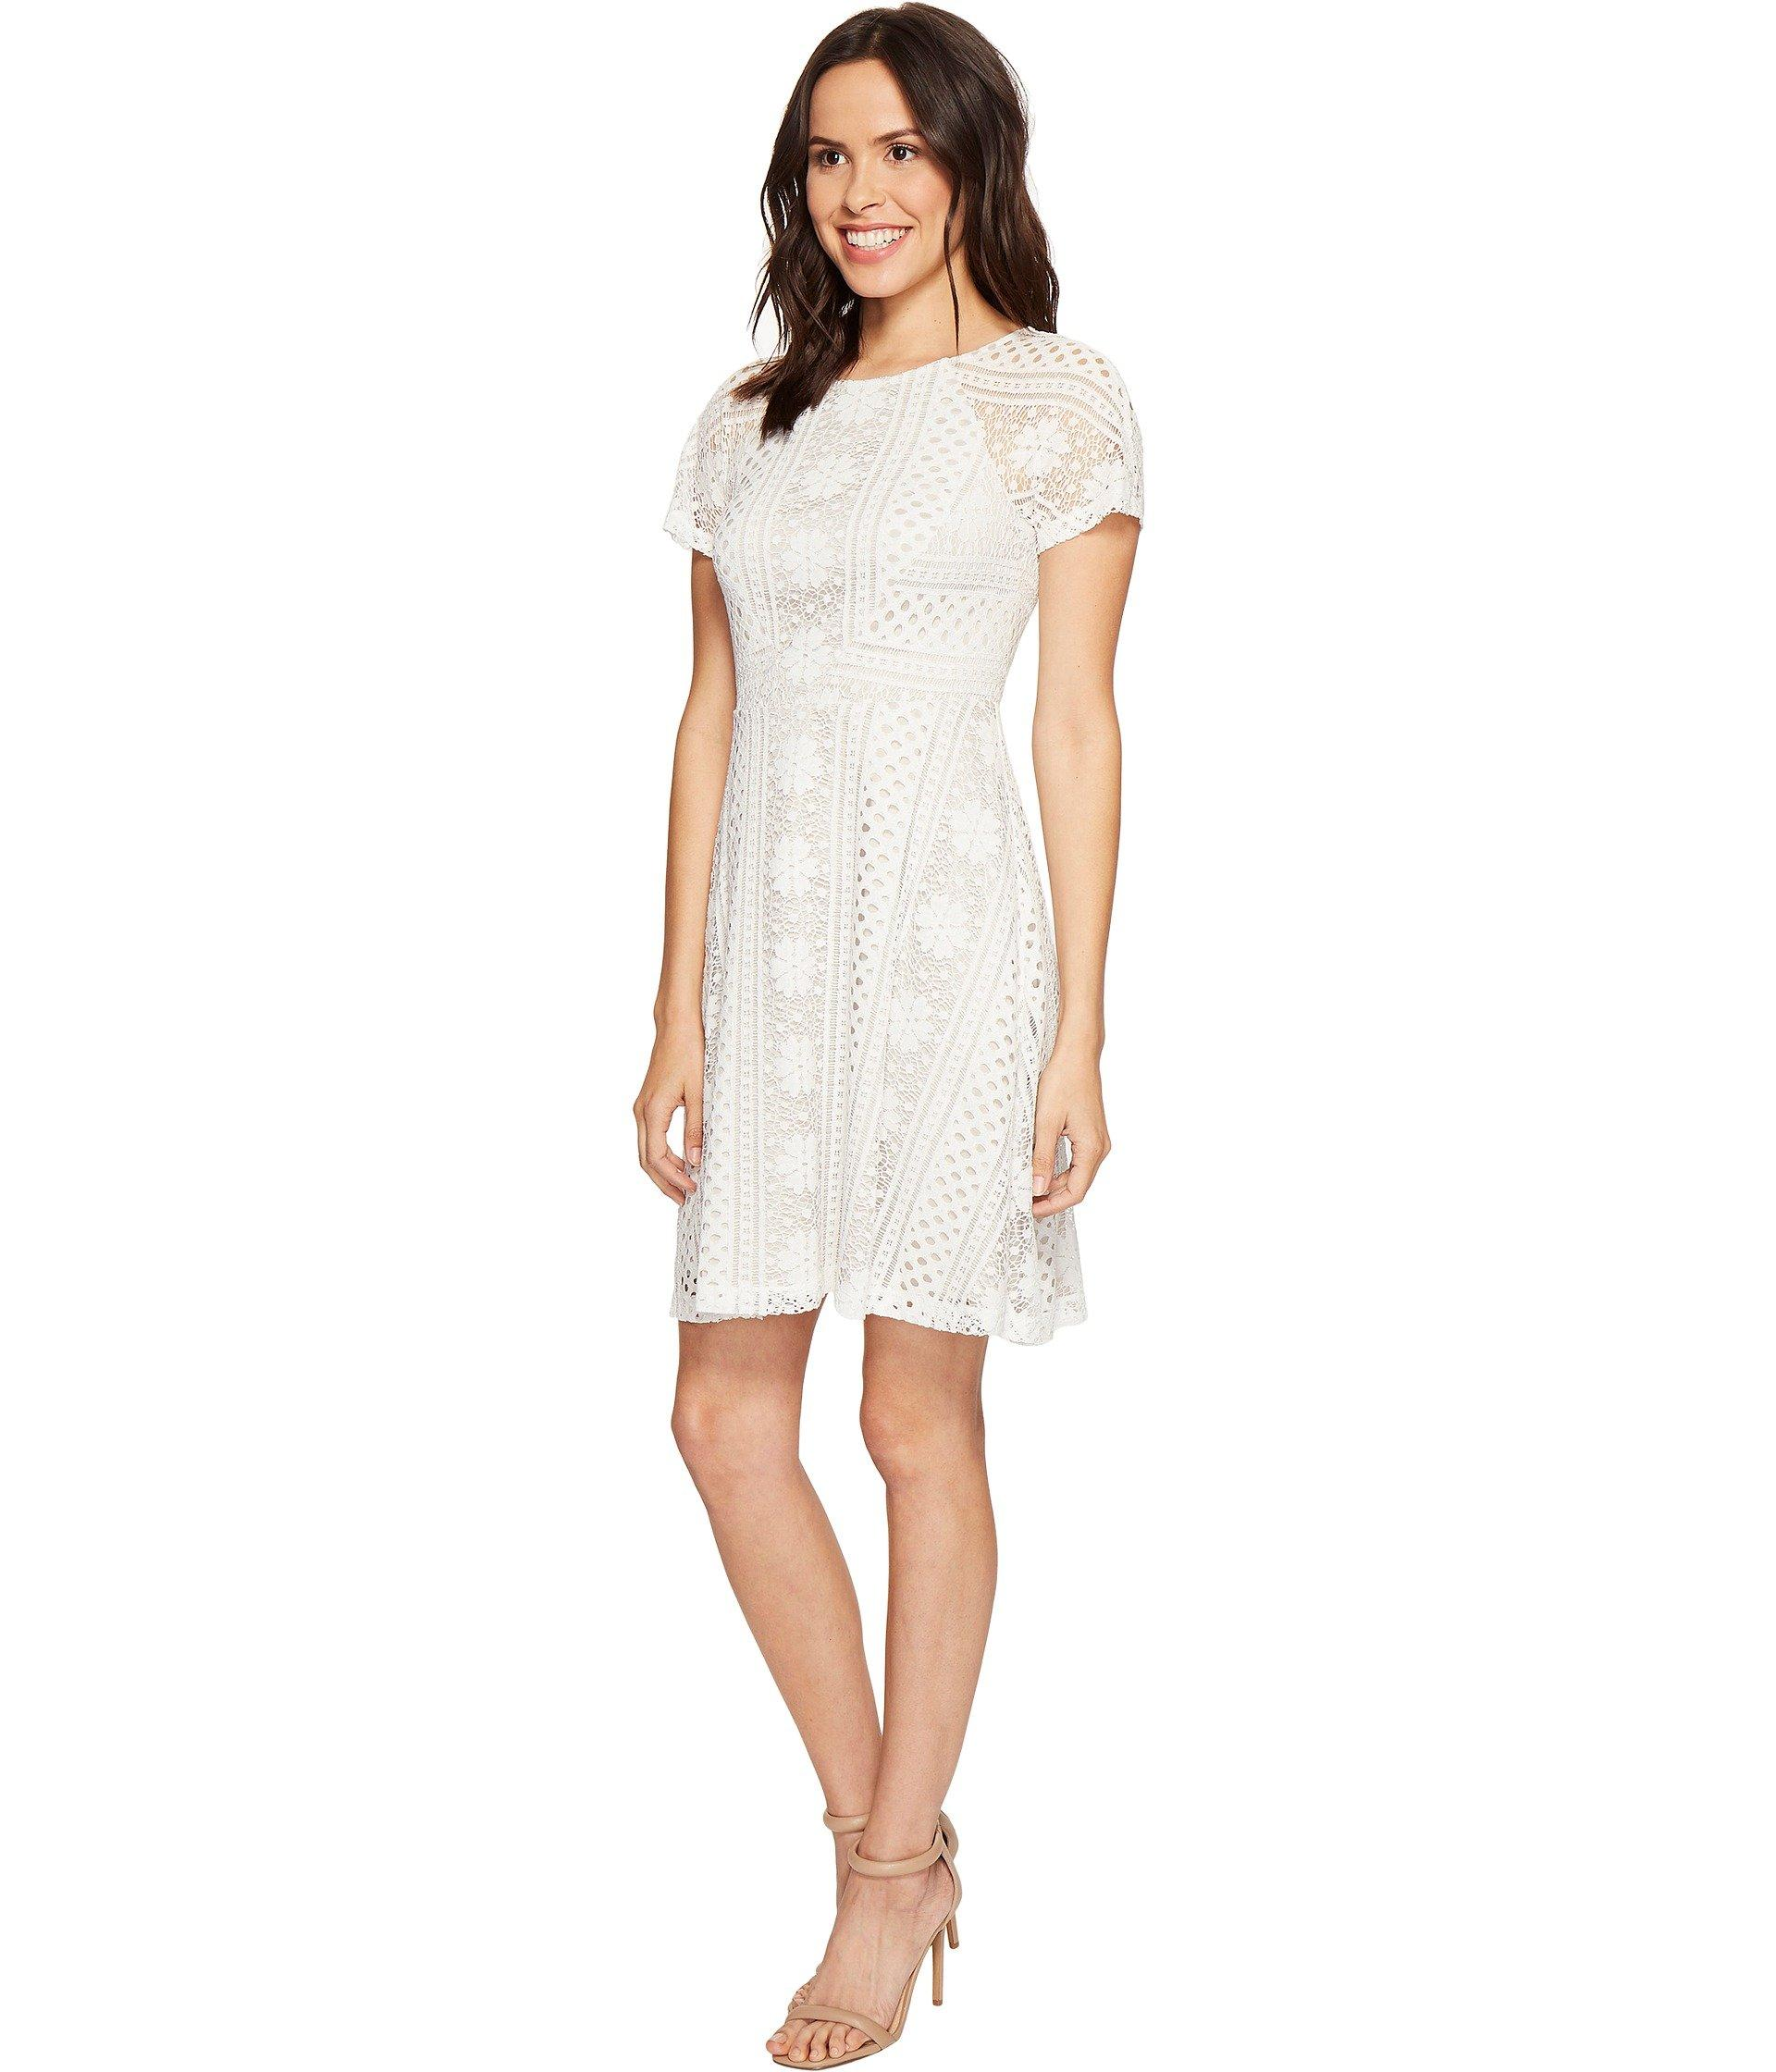 Adrianna Papell Verona Striped Lace Spliced Fit And Flare